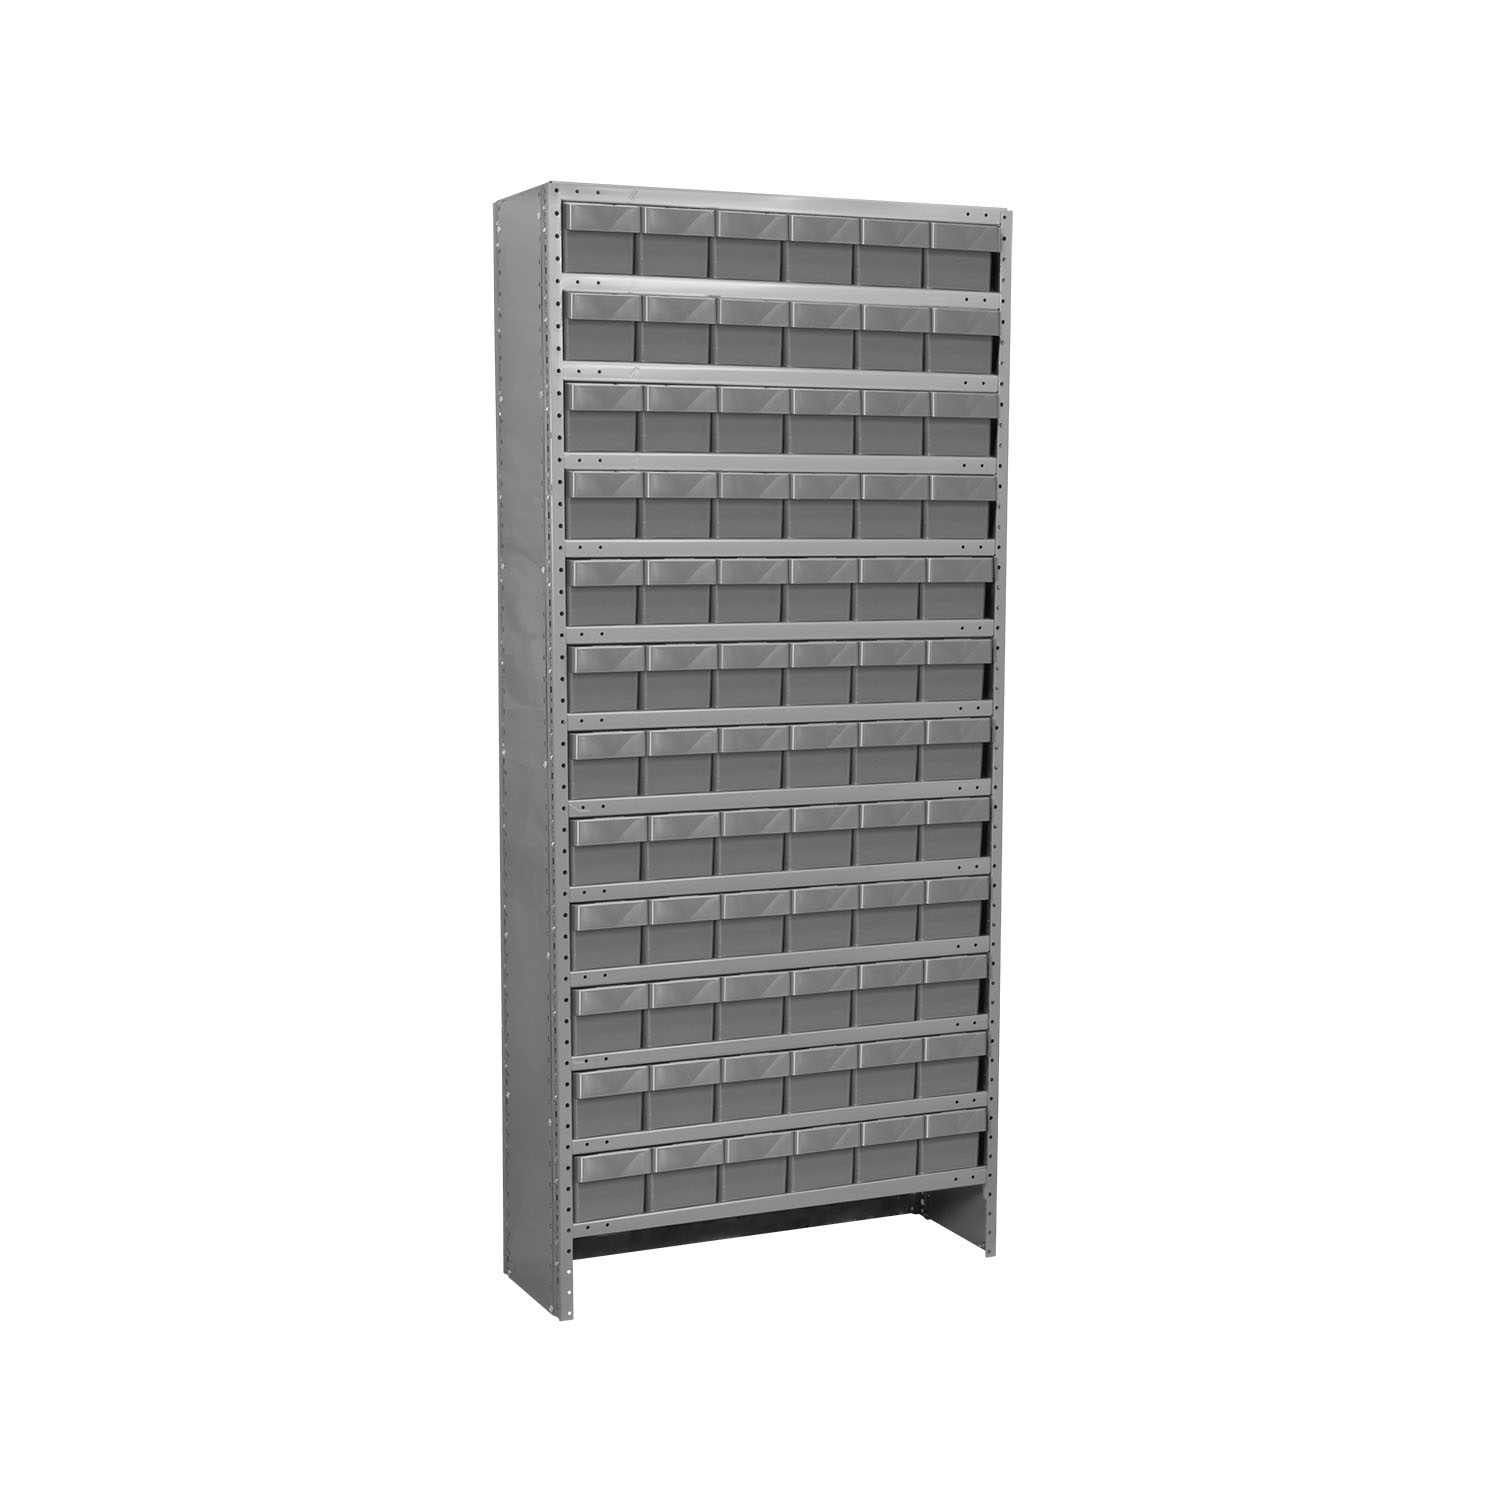 Akro-Mils Enclosed Steel Shelving Kit 13 Shelves 12x36x79, 72 AkroDrawers Gray/Gray